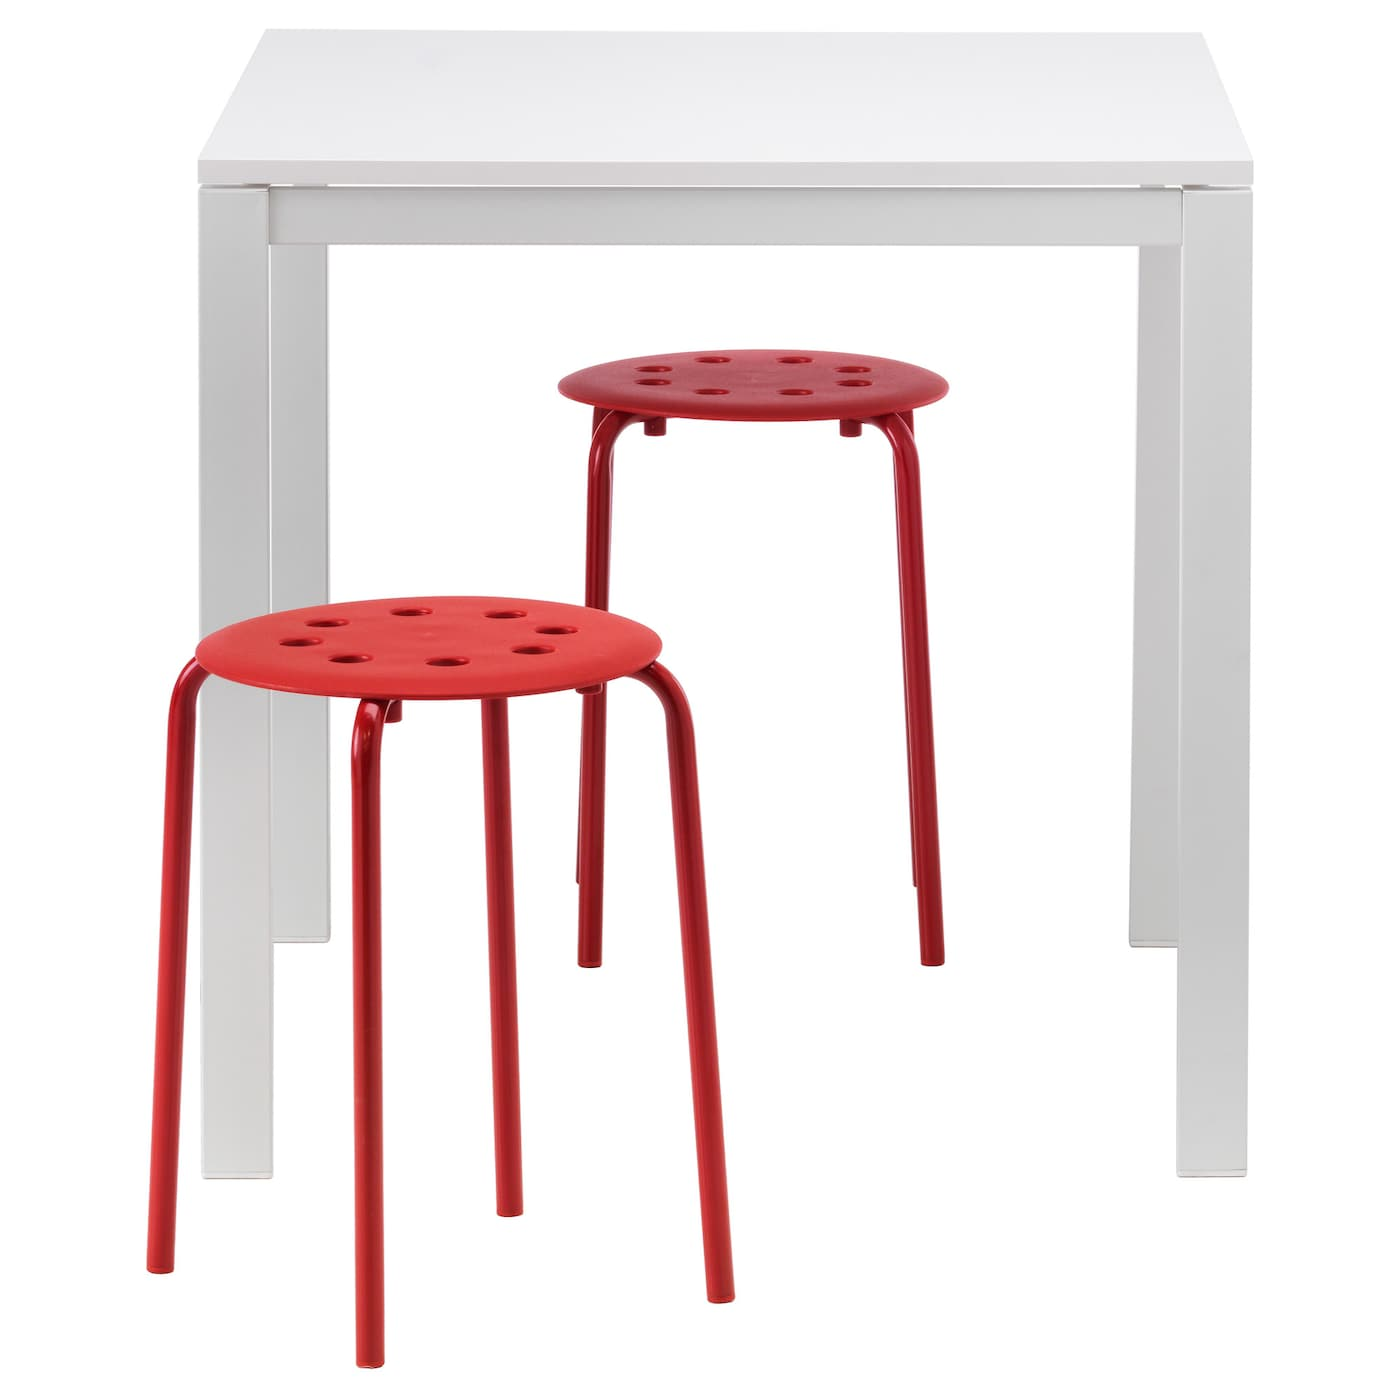 melltorp marius table and 2 stools white red 75 cm ikea. Black Bedroom Furniture Sets. Home Design Ideas